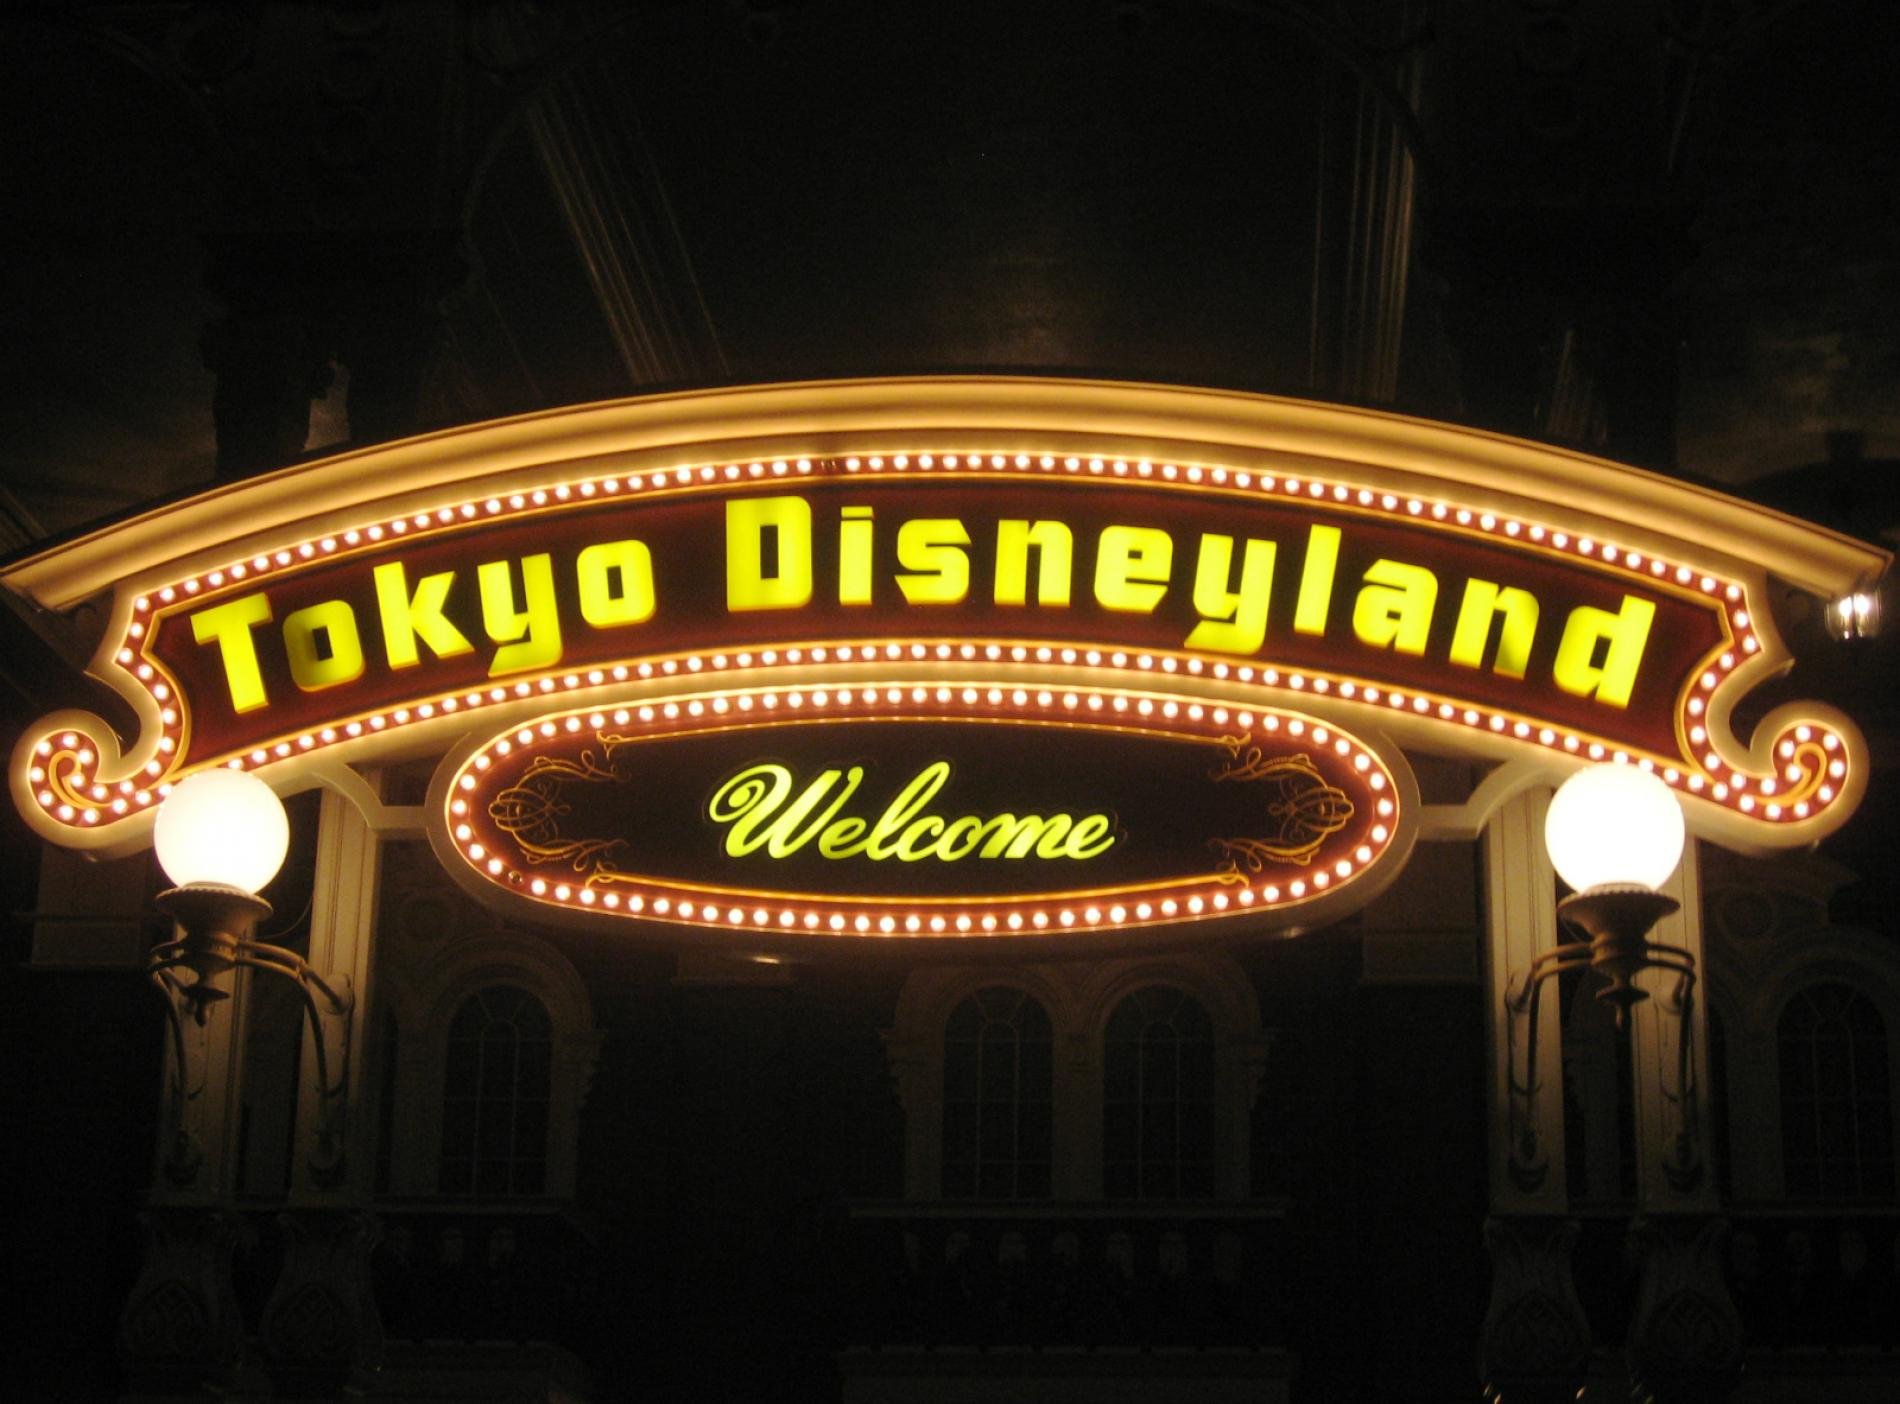 【Popular!】Tokyo Disney Resort eTicket Passport: 3-Day.4-Day Magic Passport.Starlight Passport""